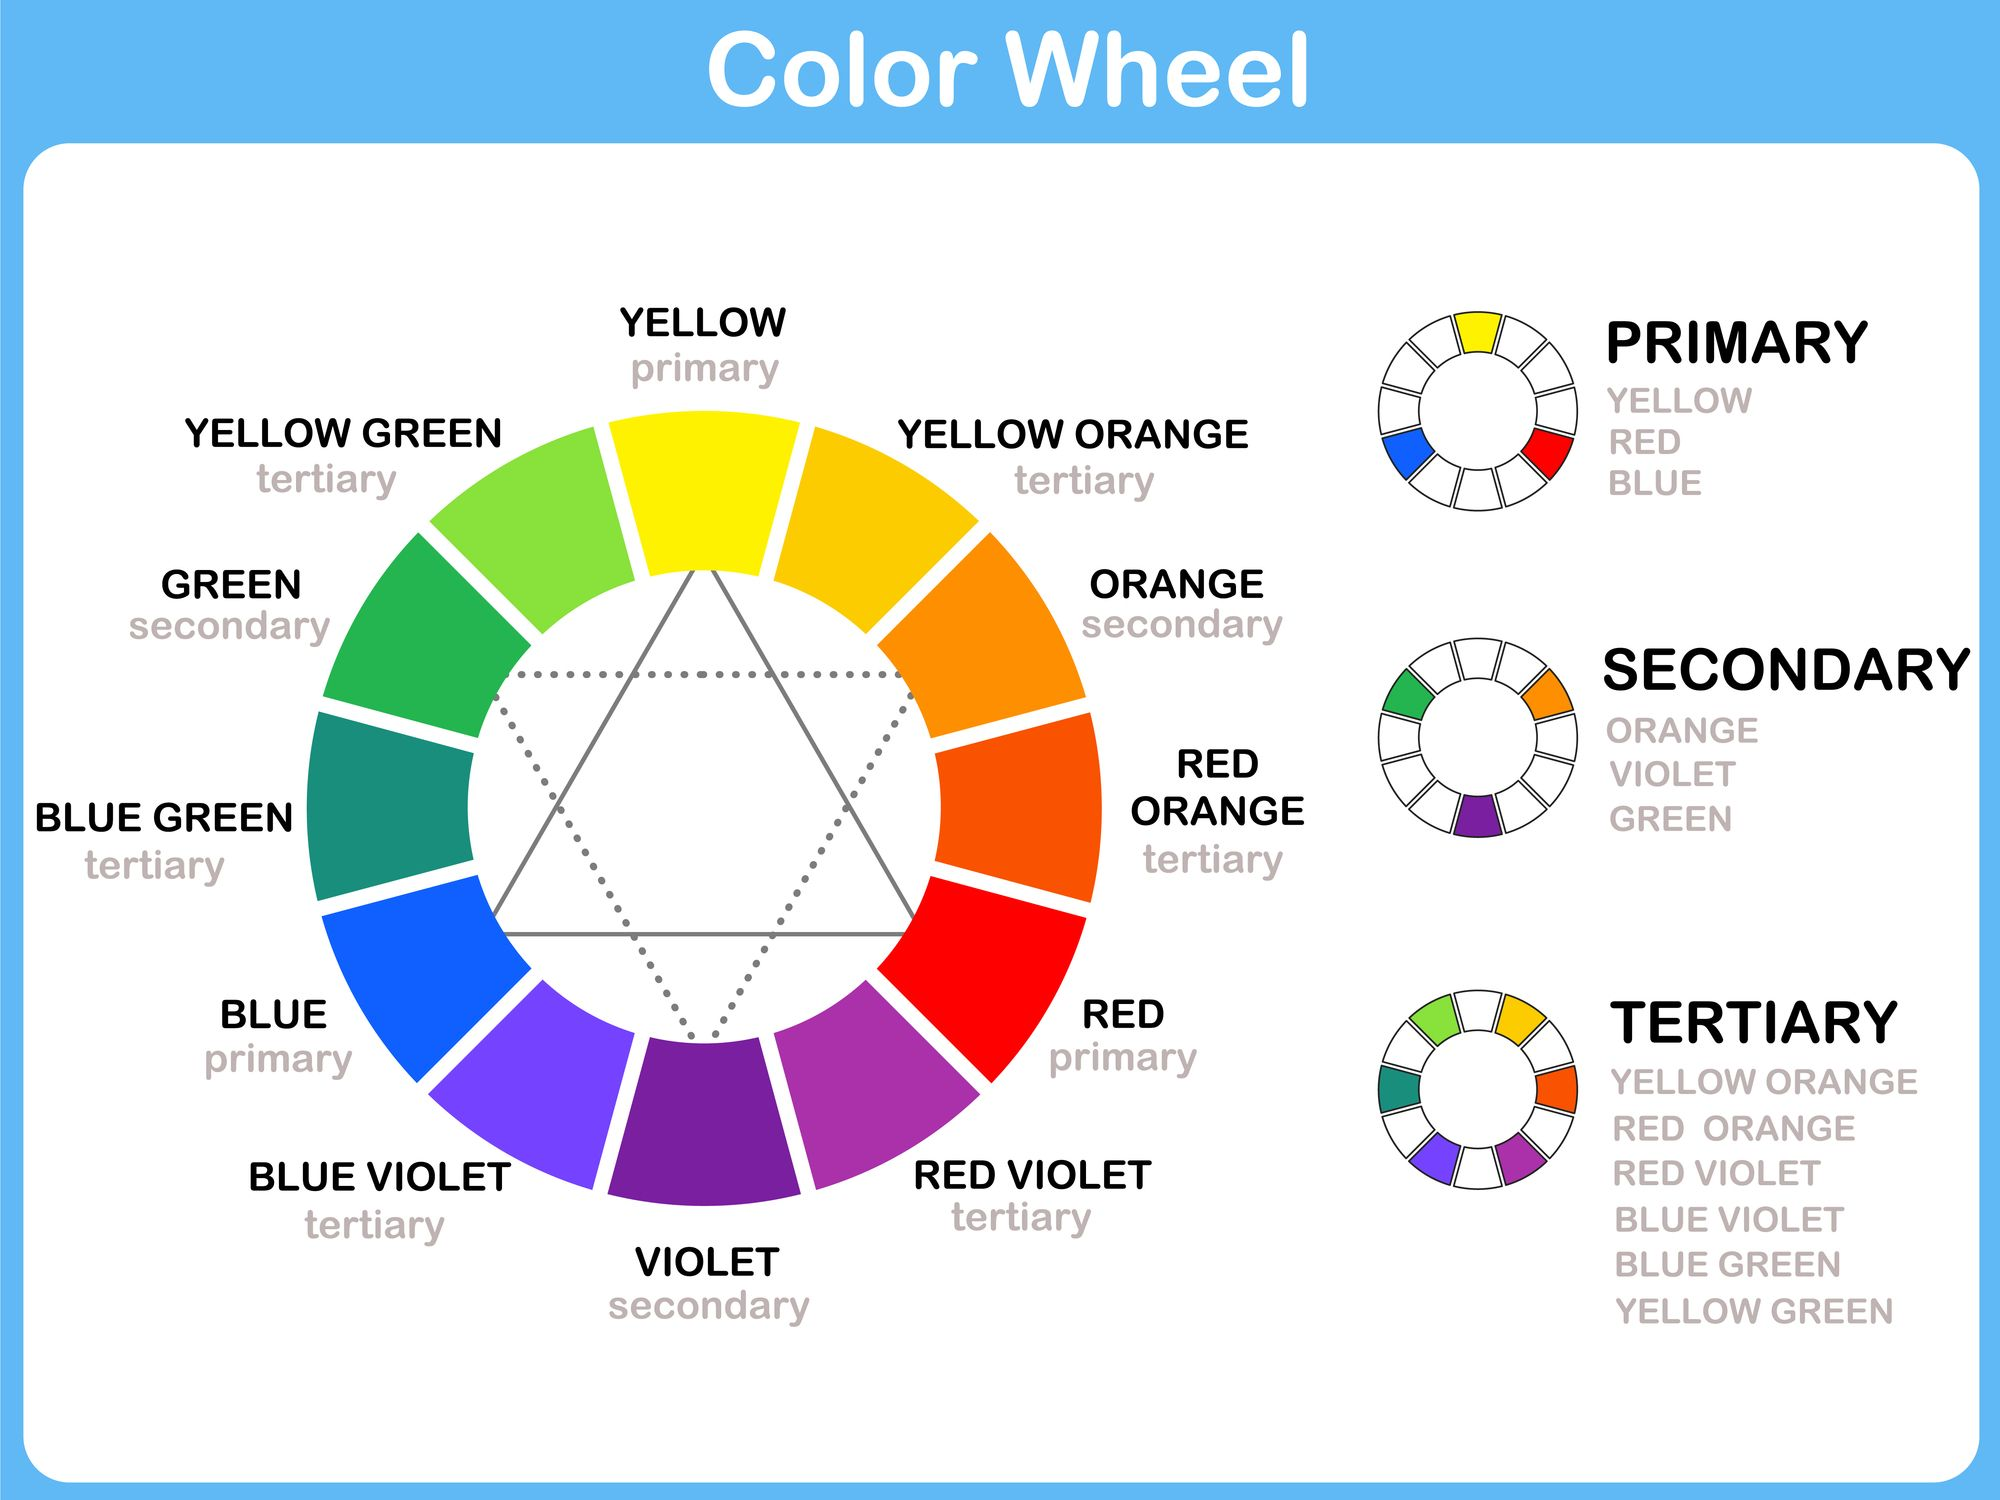 Warm And Cool Colors When Divided Into Two The Color Wheel